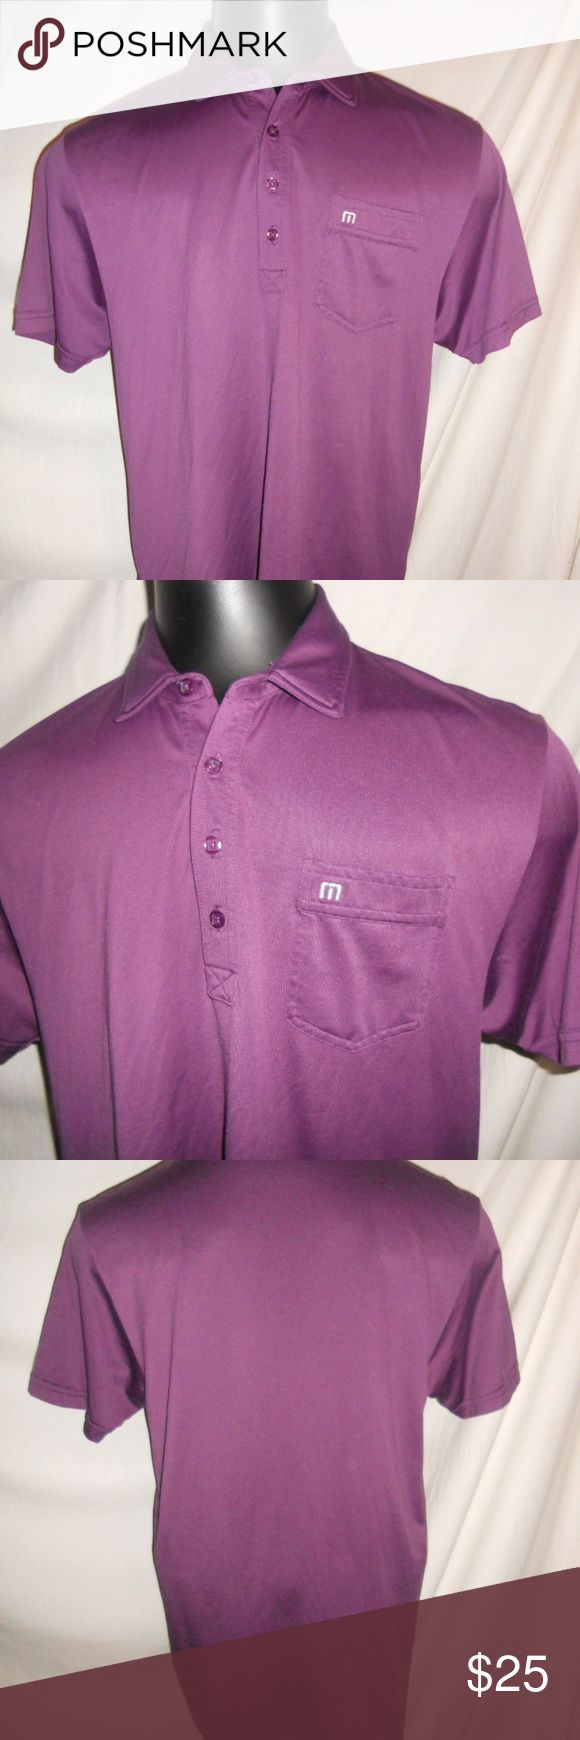 Travis Mathew Purple Golf Polo Shirt Size Large Travis Mathew Purple Golf Polo Shirt Size Large. Shirt is in excellent condition and ready for a new home. Travis Mathew Shirts Polos